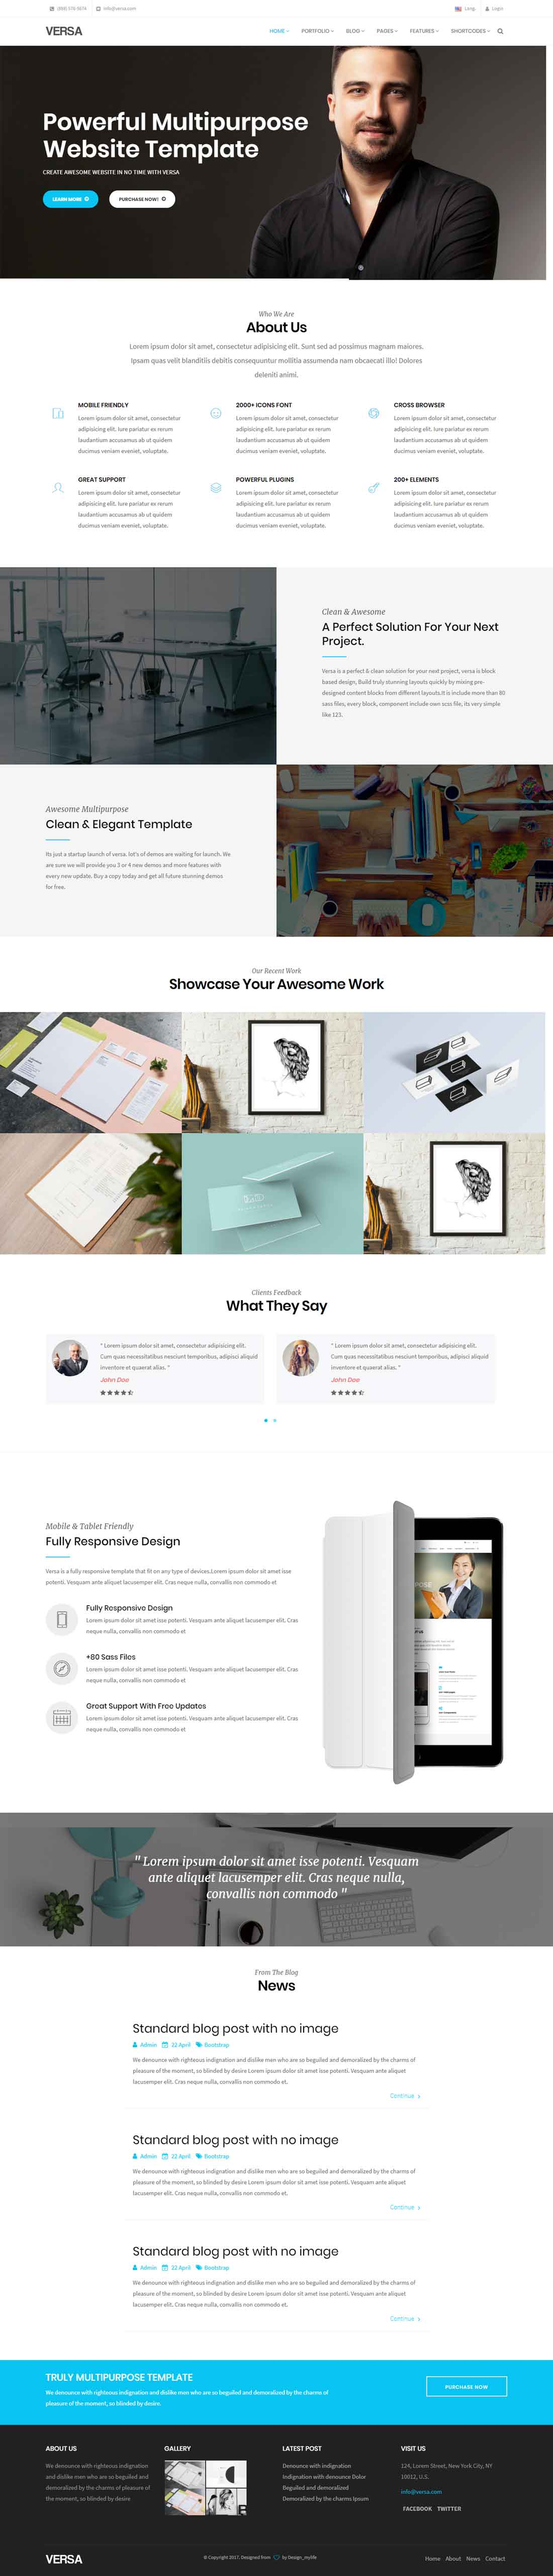 Versa – HTML5 Powerful Multipurpose Website Template